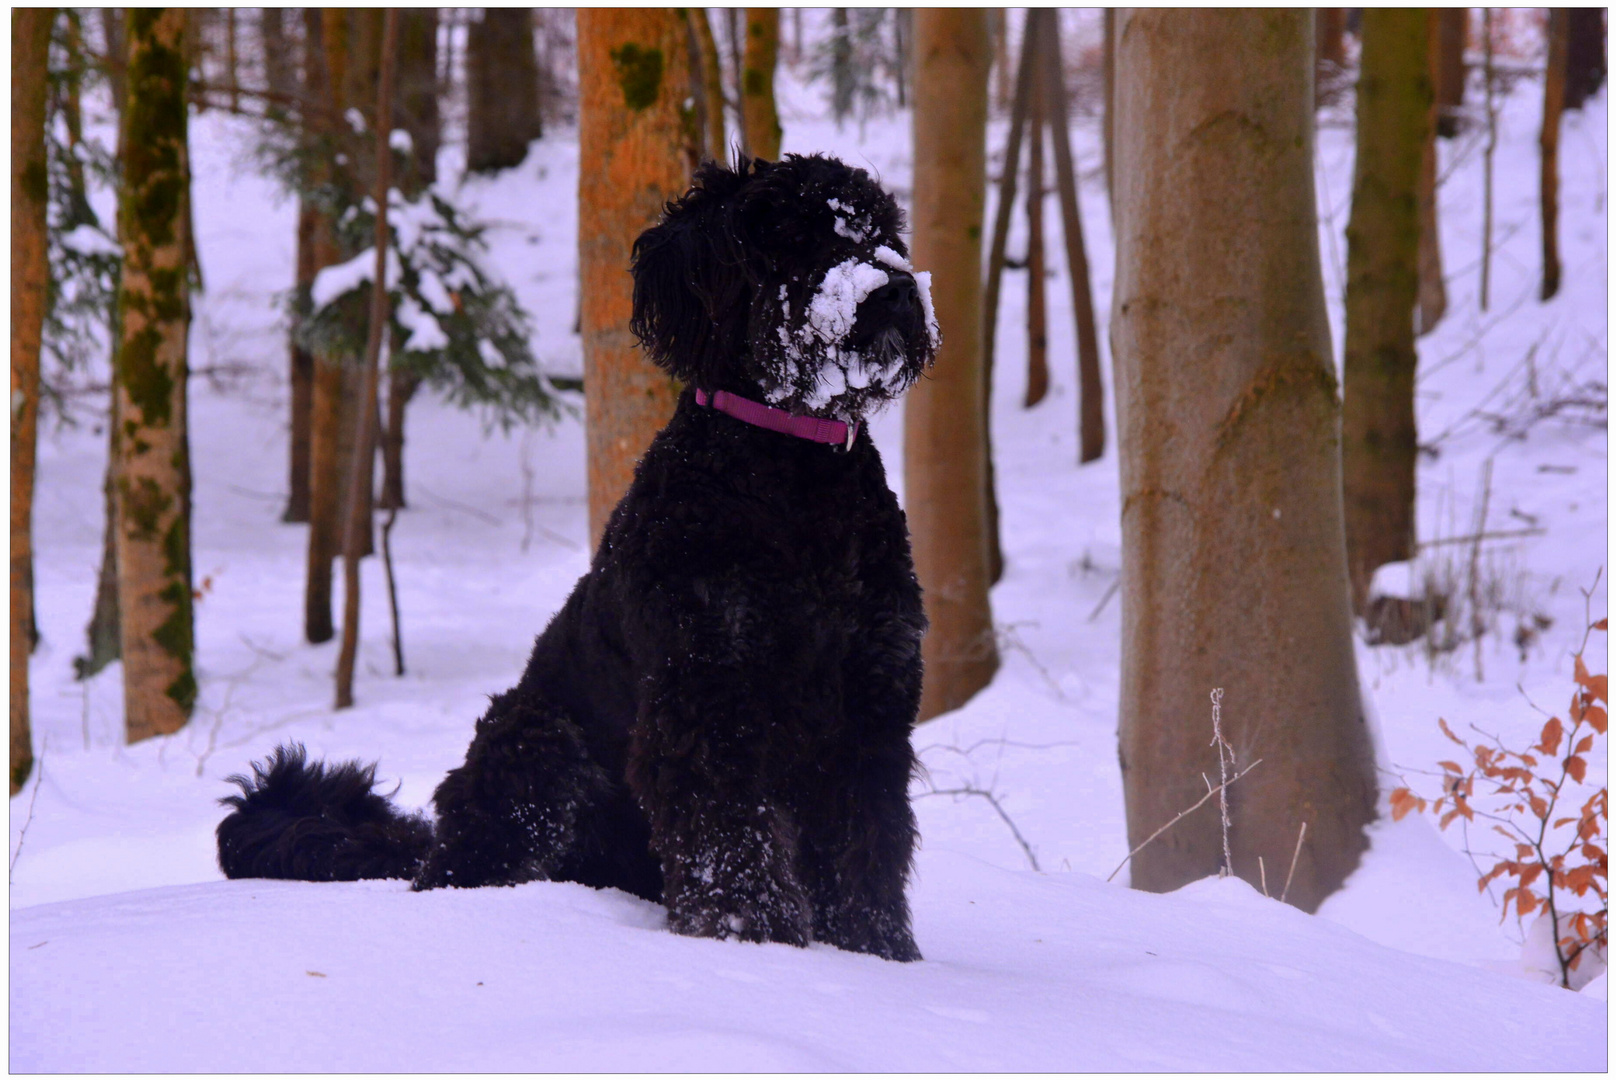 Wicky-Emily im Winterwald (Wicky-Emily en el bosque invernal)